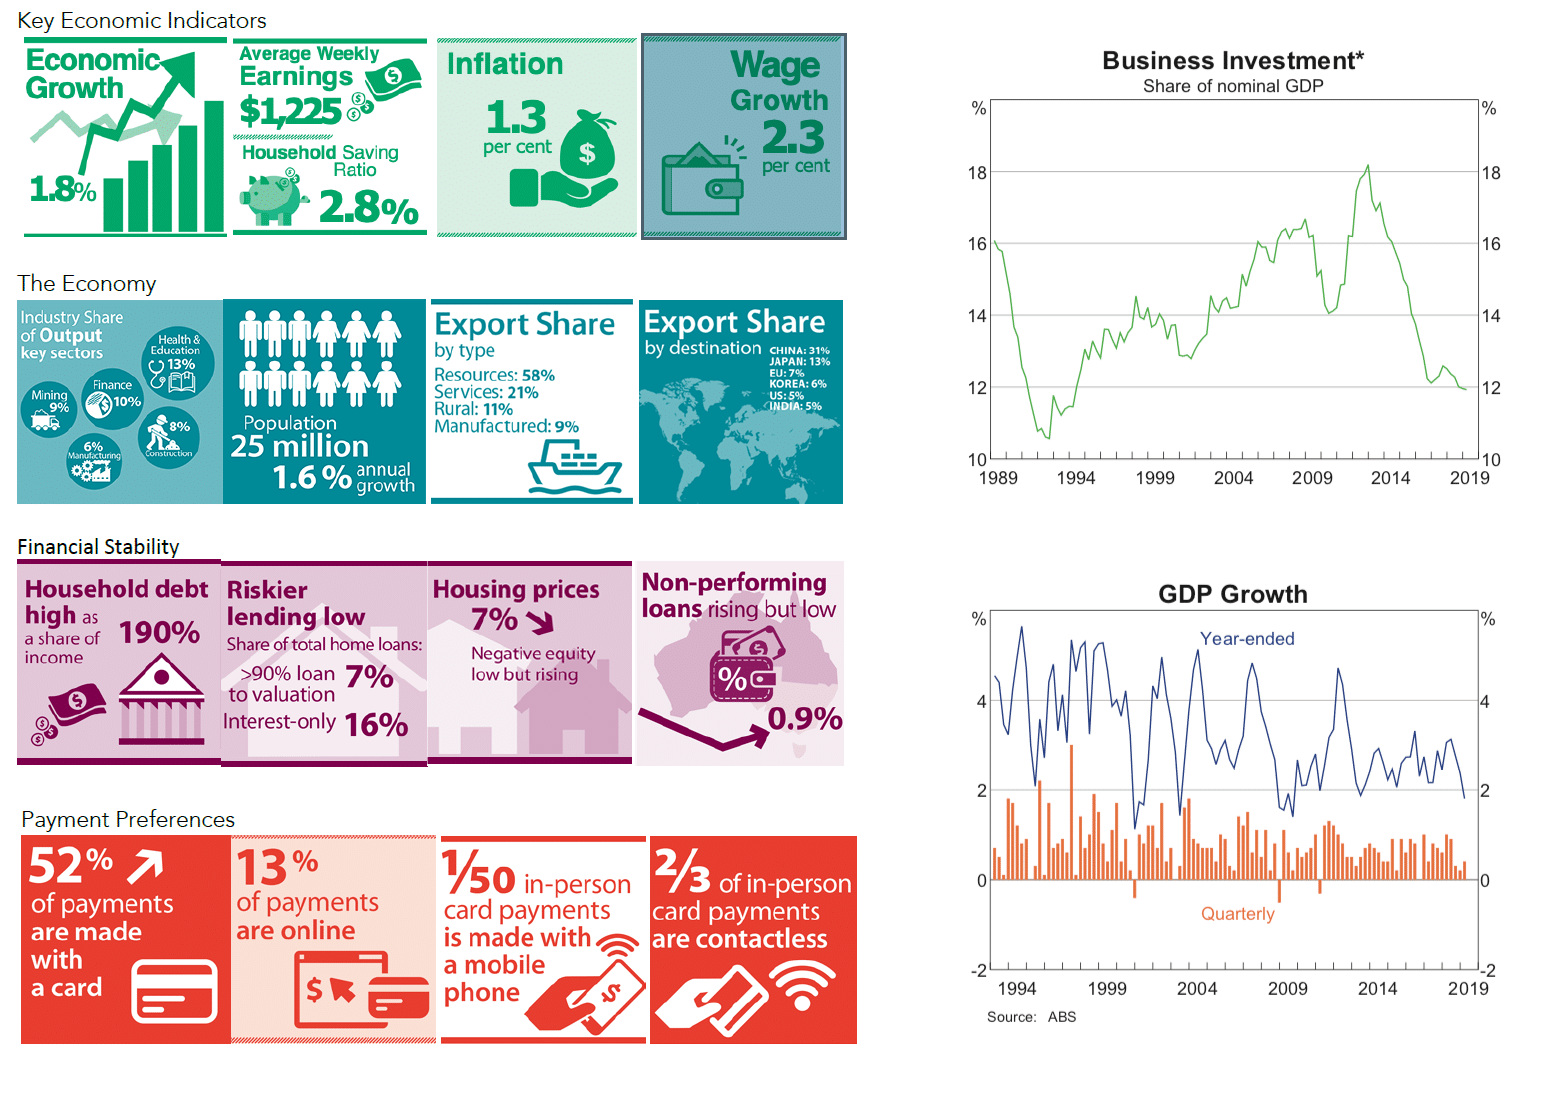 Industry and economy trends